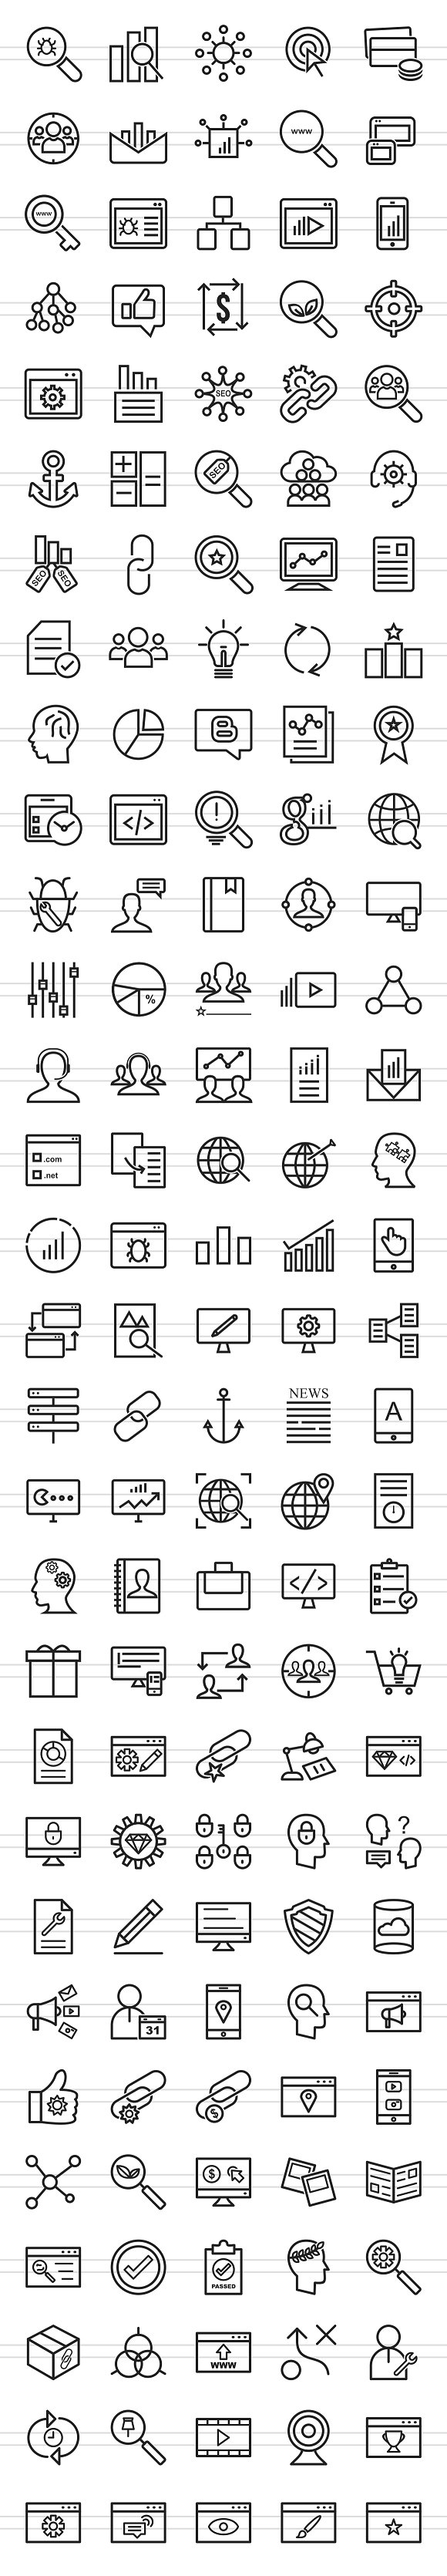 150 IT Services Line Icons in Graphics - product preview 1